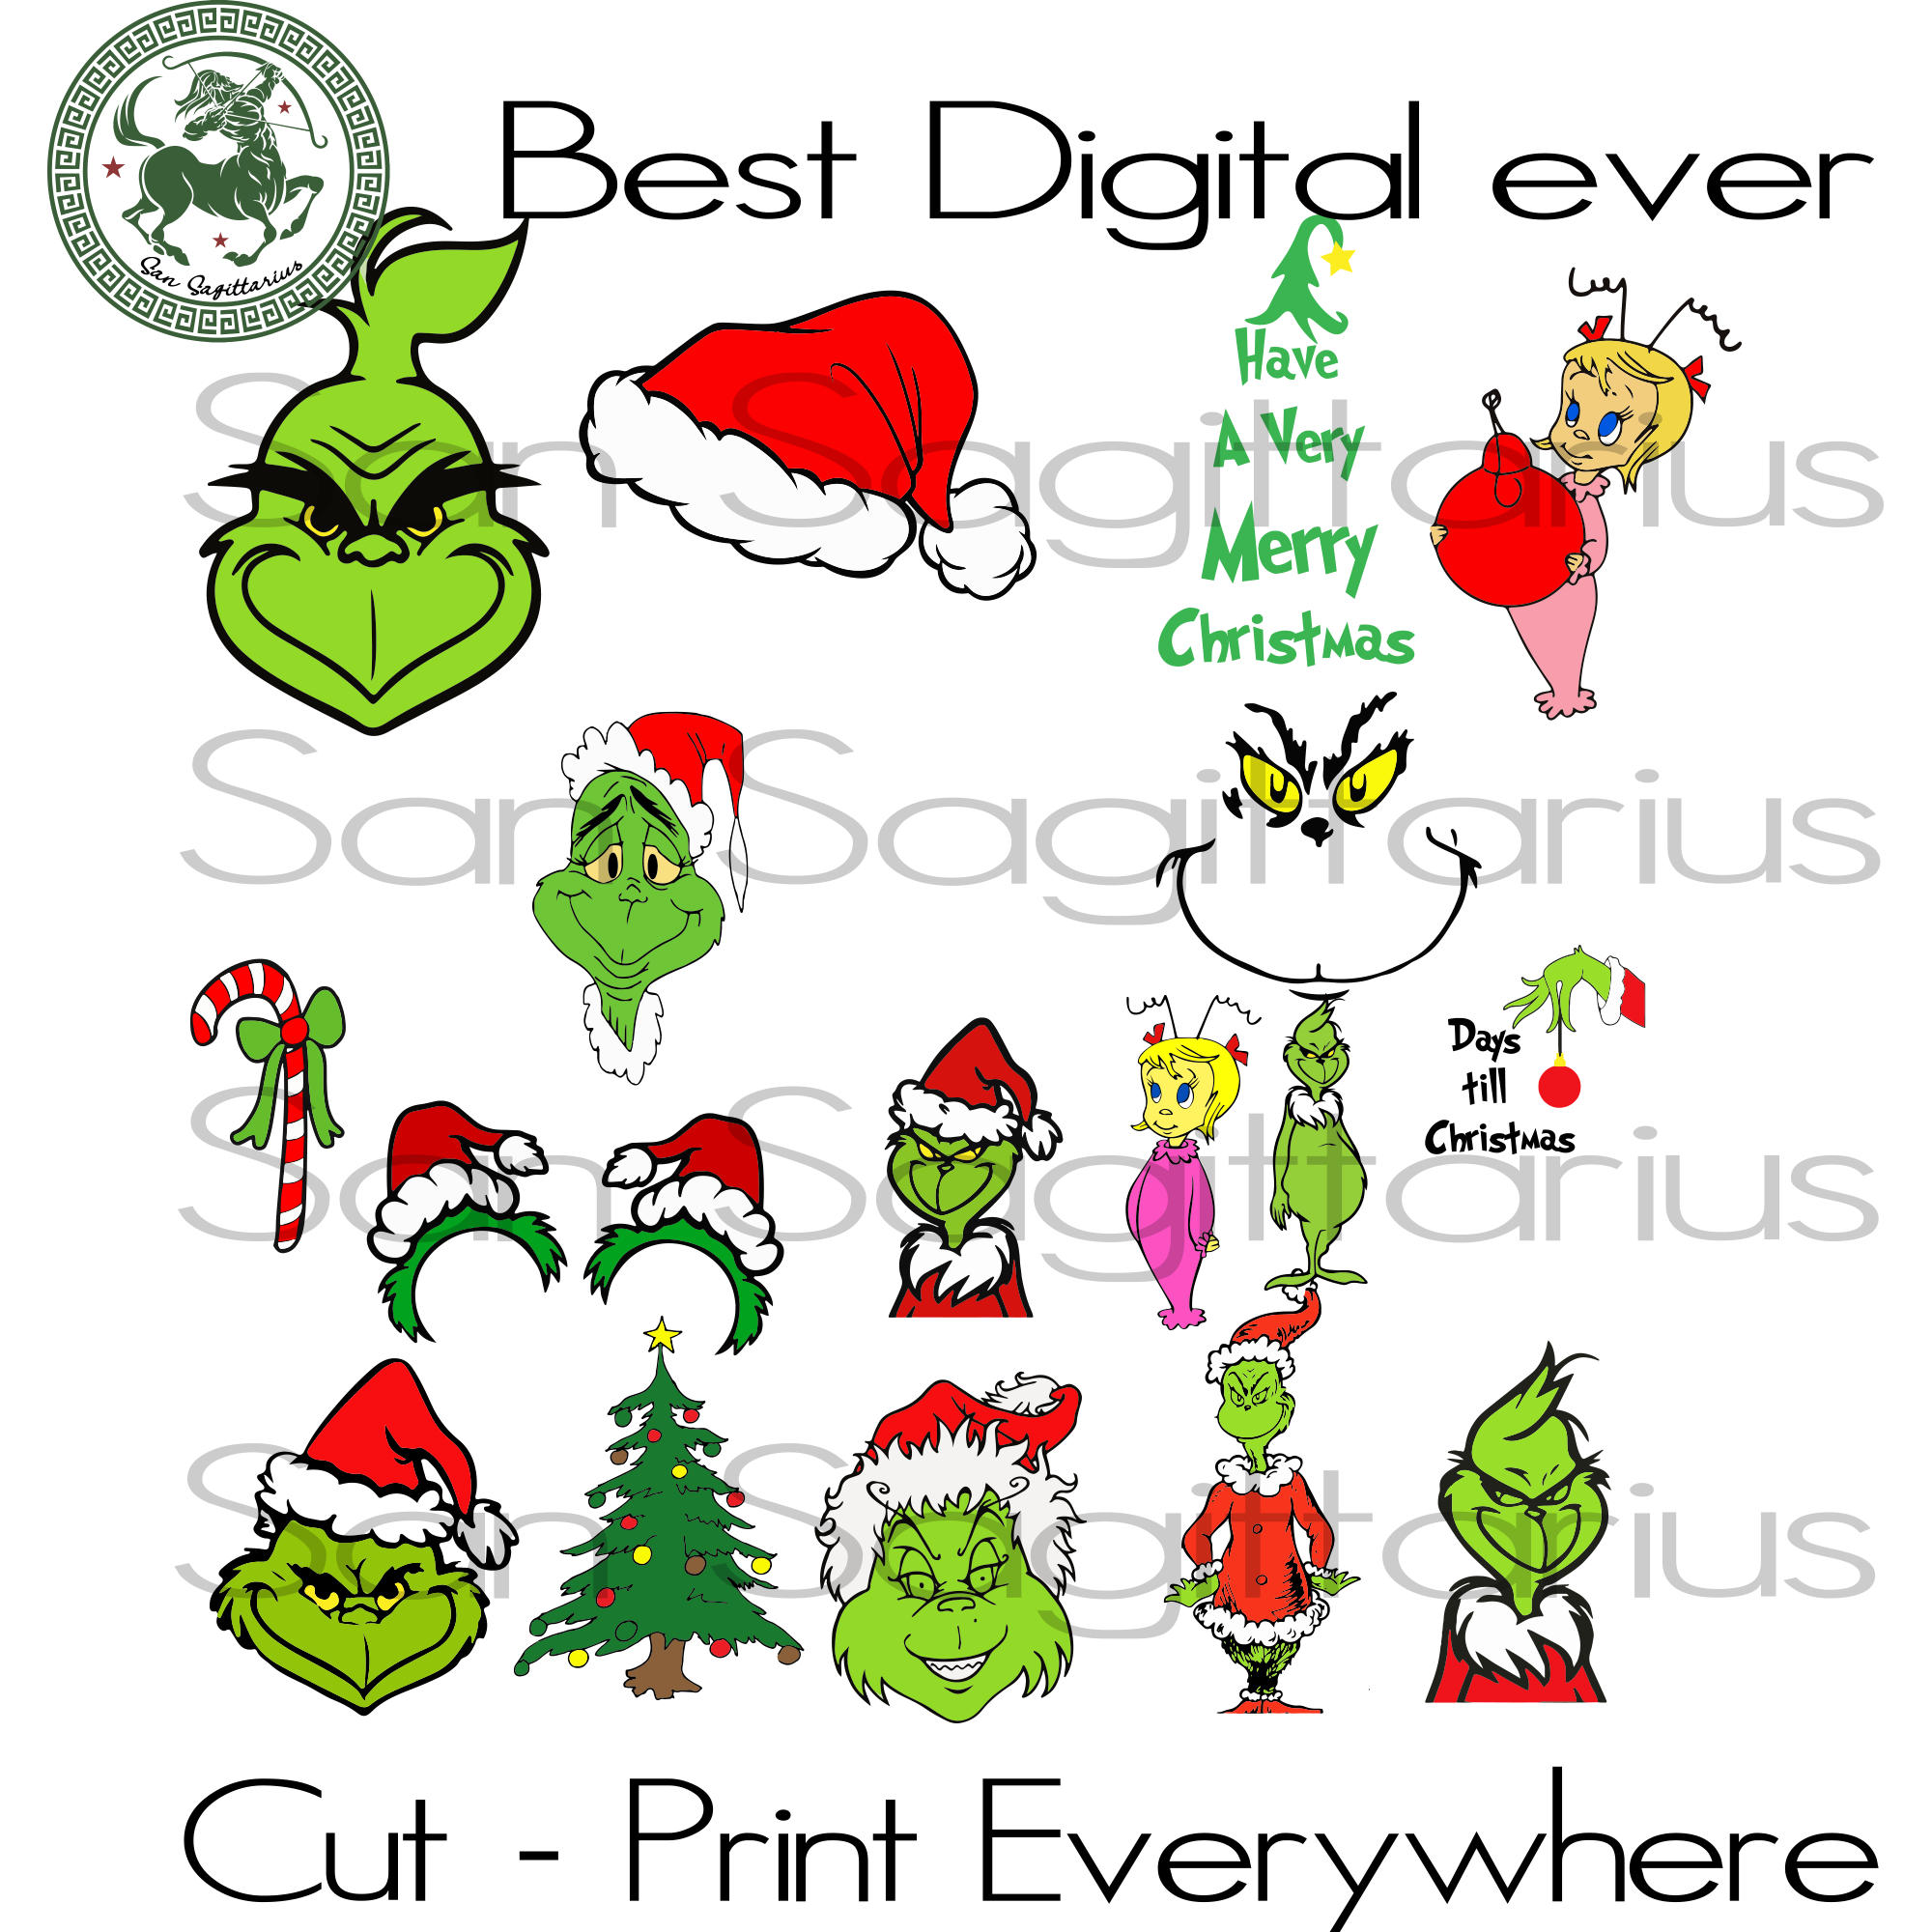 Grinch Bundle, The Grinch Svg, Christmas Svg, Christmas Grinch Svg, The Grinch, Grinch Svg, The Grinch Lover Svg, Grinch Cut File, Grinch Christmas, Grinch Lover Svg, Christmas Gift, Christma